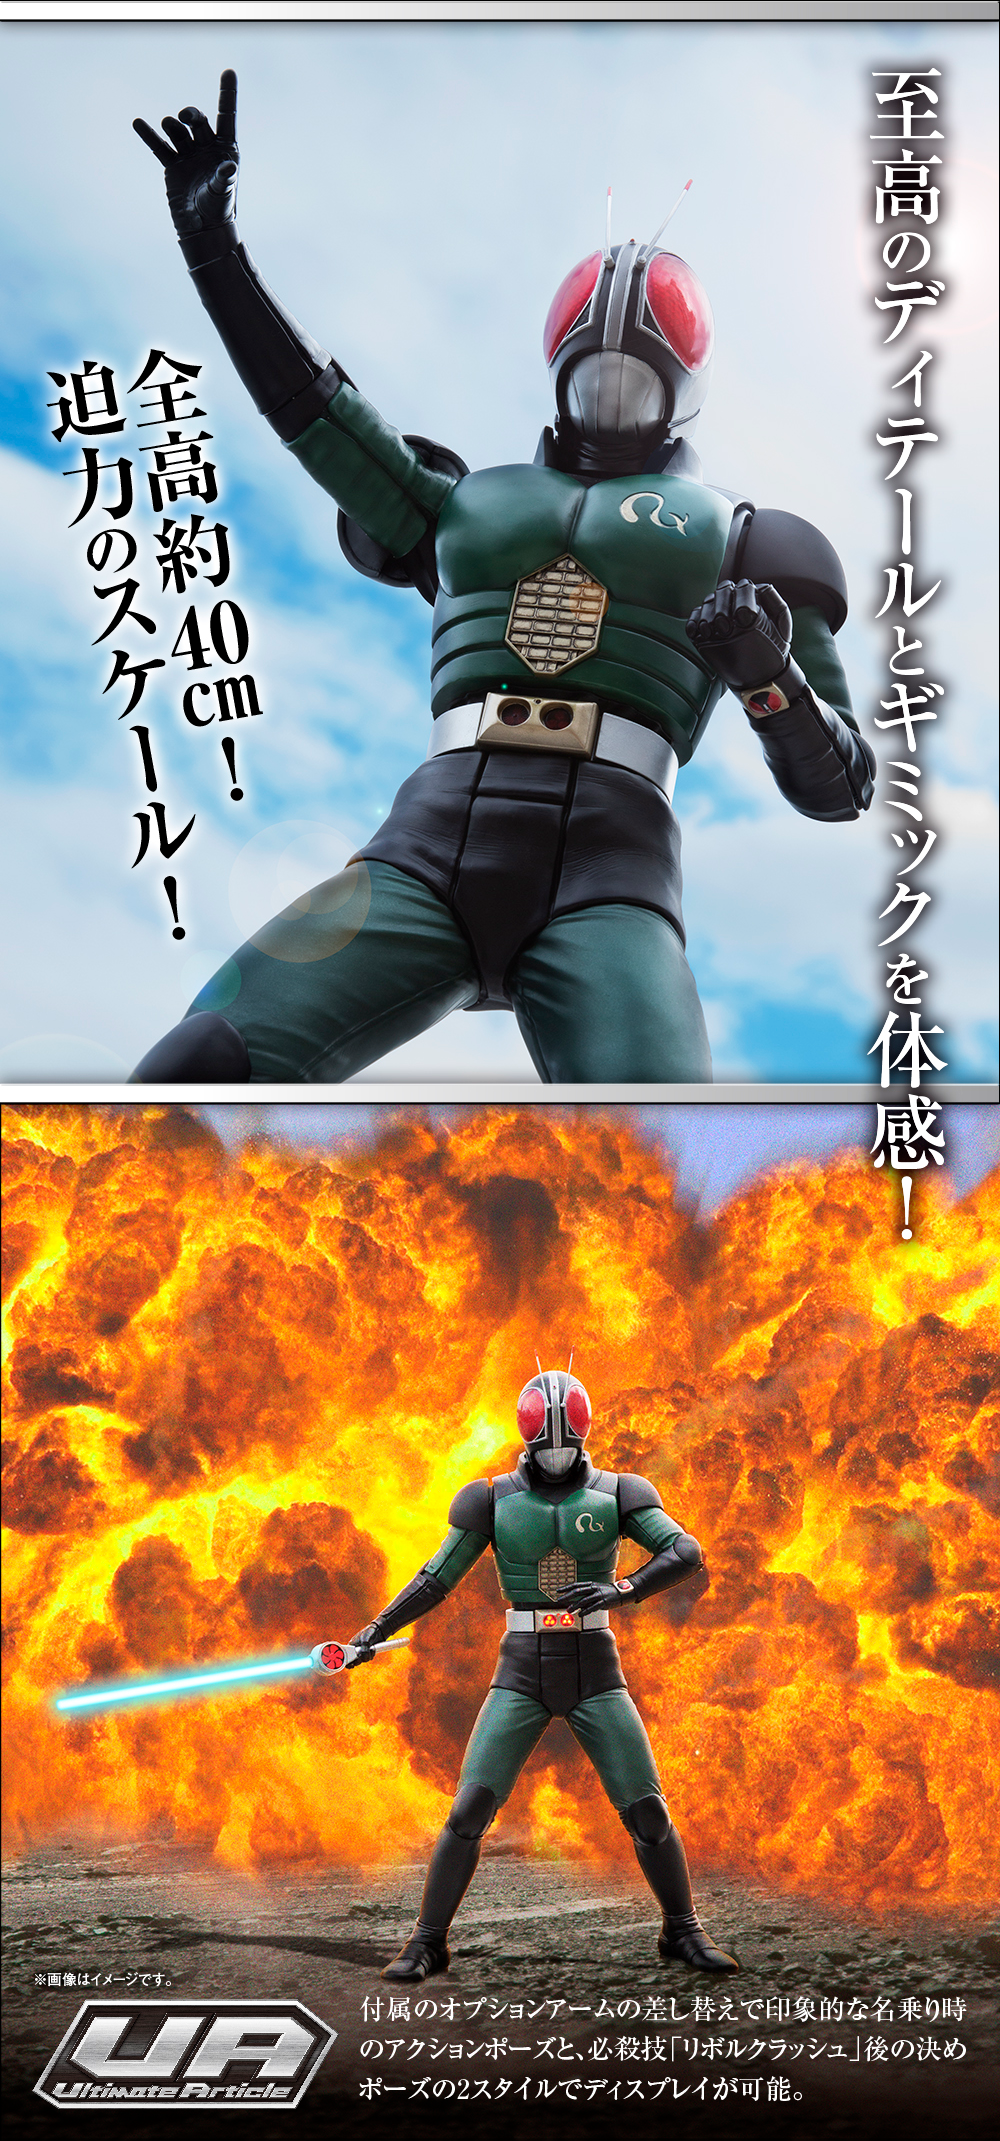 Ultimate Article 仮面ライダーBLACK RX05